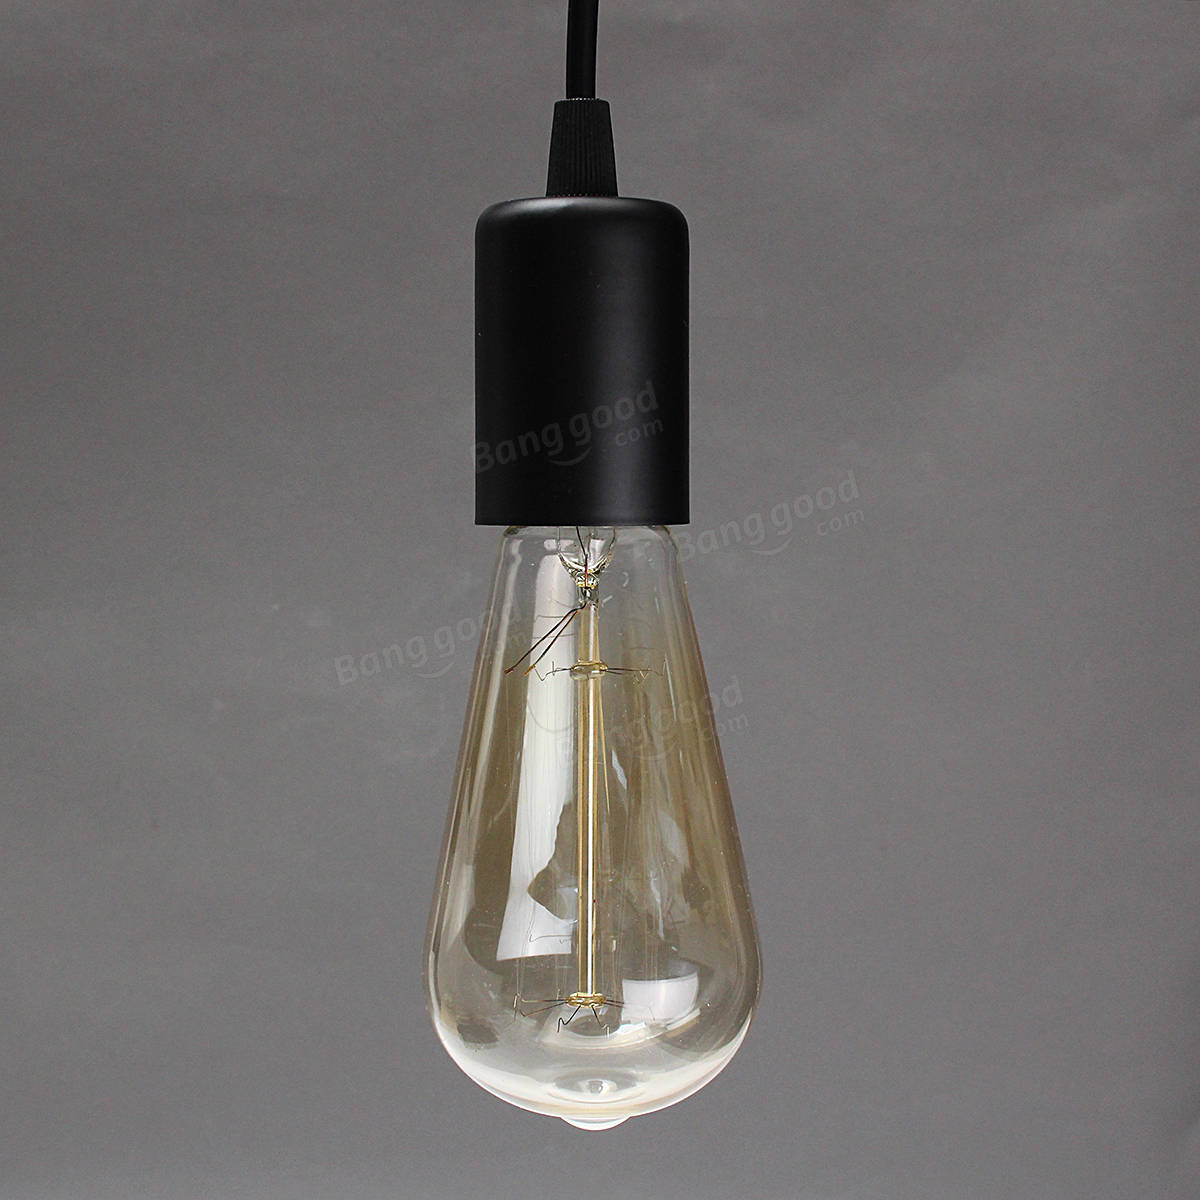 hanging light fixtures living room green and brown rugs e27 single head home ceiling pendant lamp bulb ...